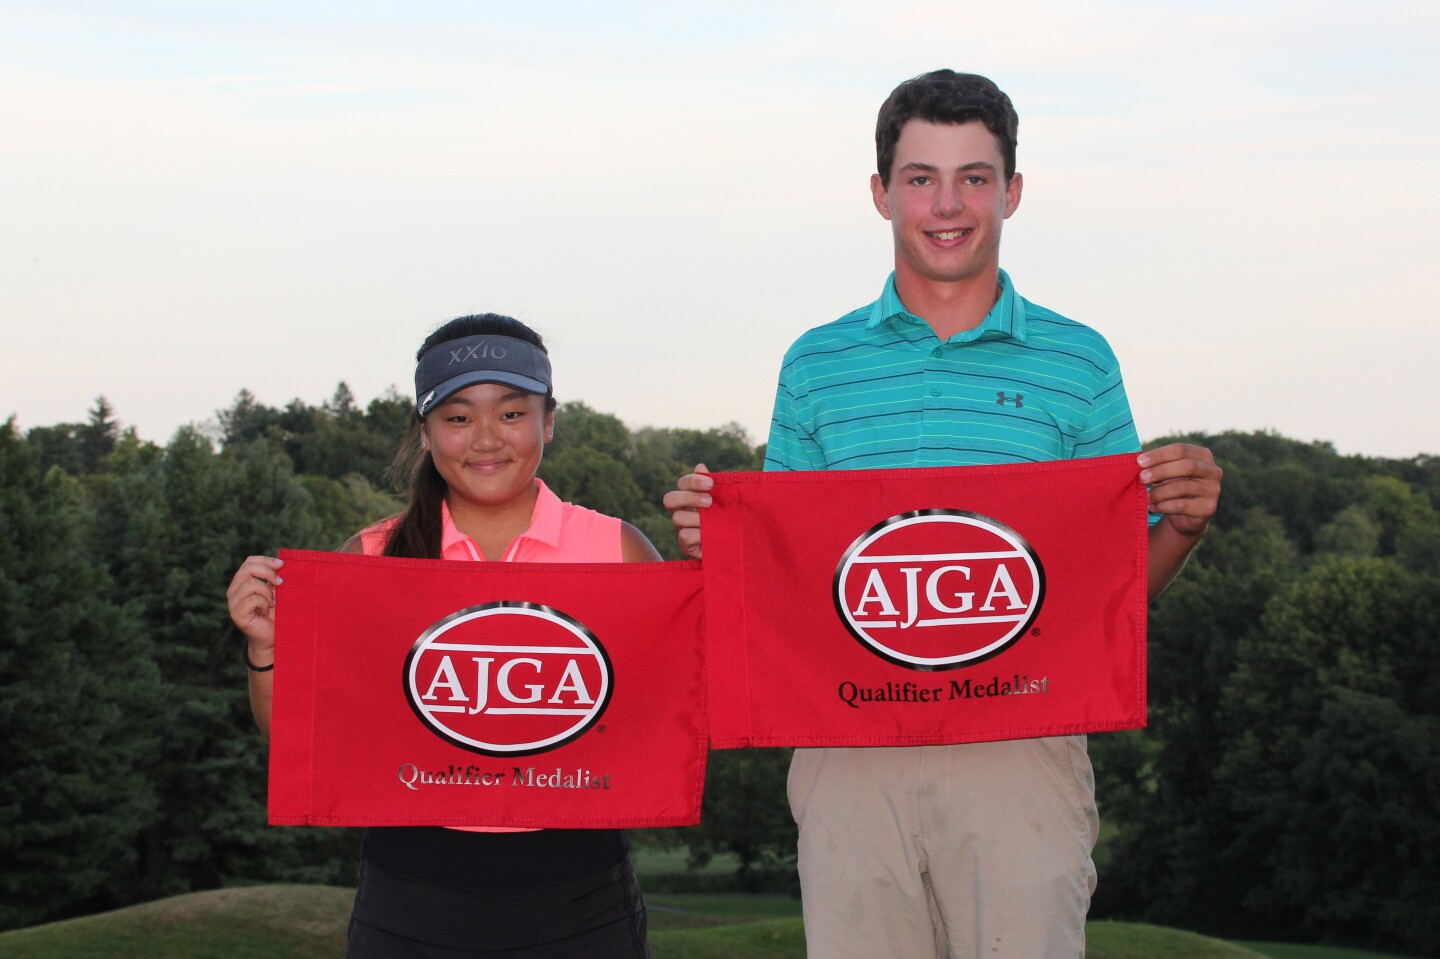 Lee, Feschuk - Qualifier Medalists - 2019 - Golf Performance Center JAS - Redding CC  (web).jpg